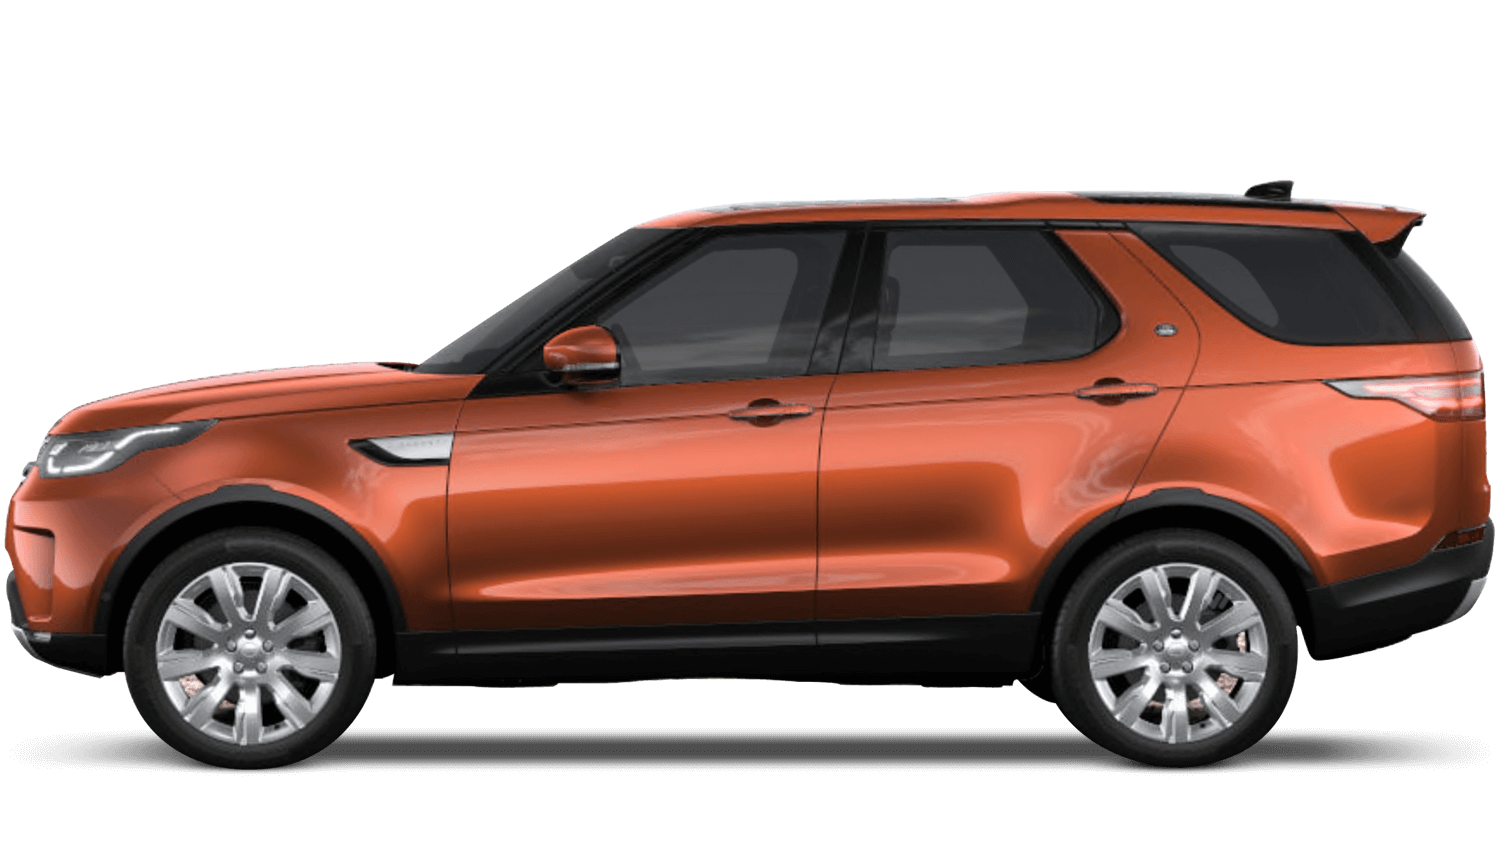 Namib Orange (Premium Metallic) Land Rover Discovery